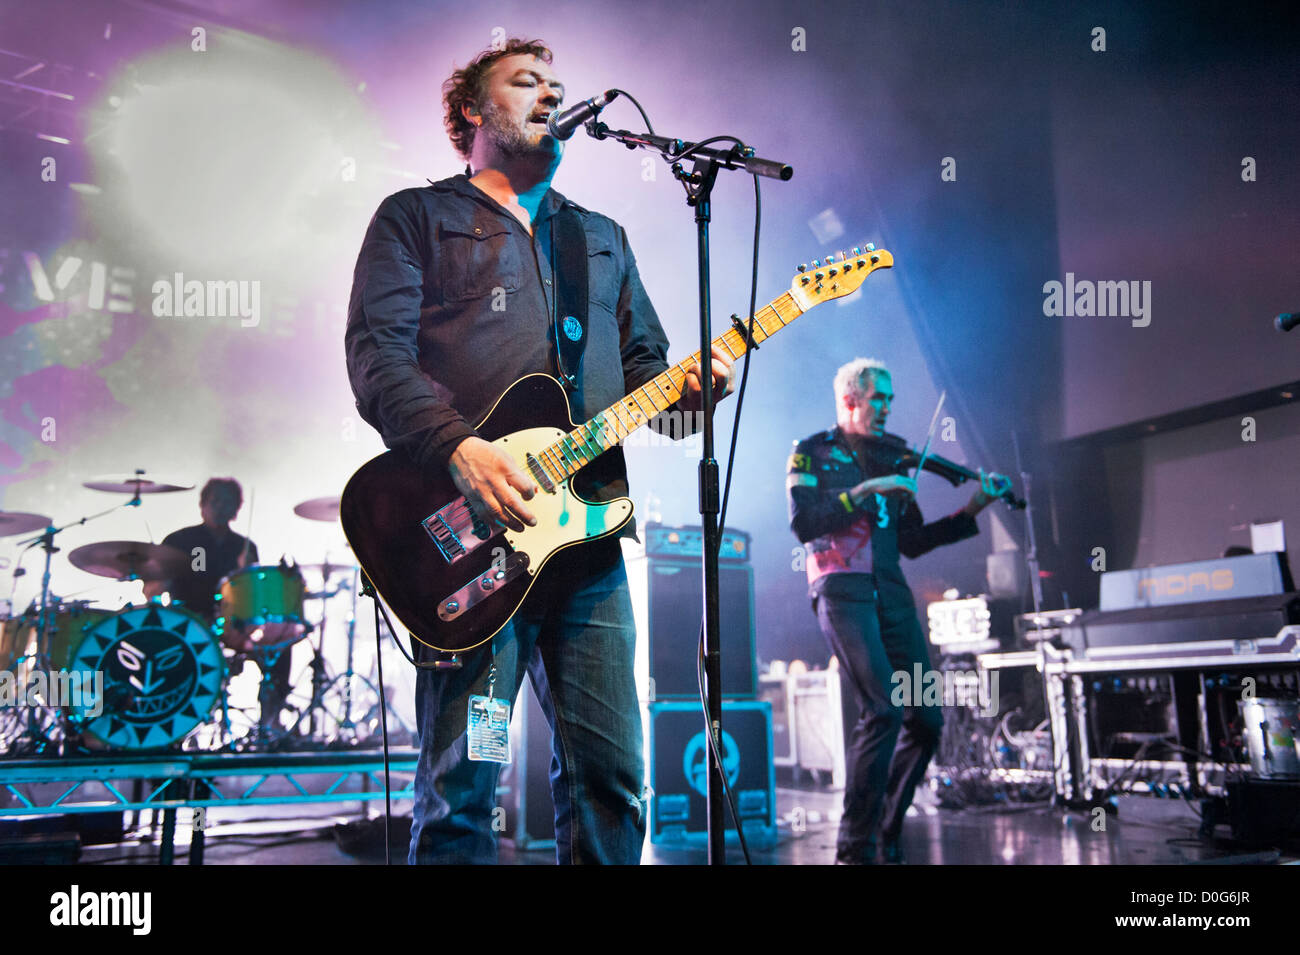 Folk rock band The Levellers in concert at Birmingham O2, 23 November 2012, with Mark Chadwick centre. - Stock Image